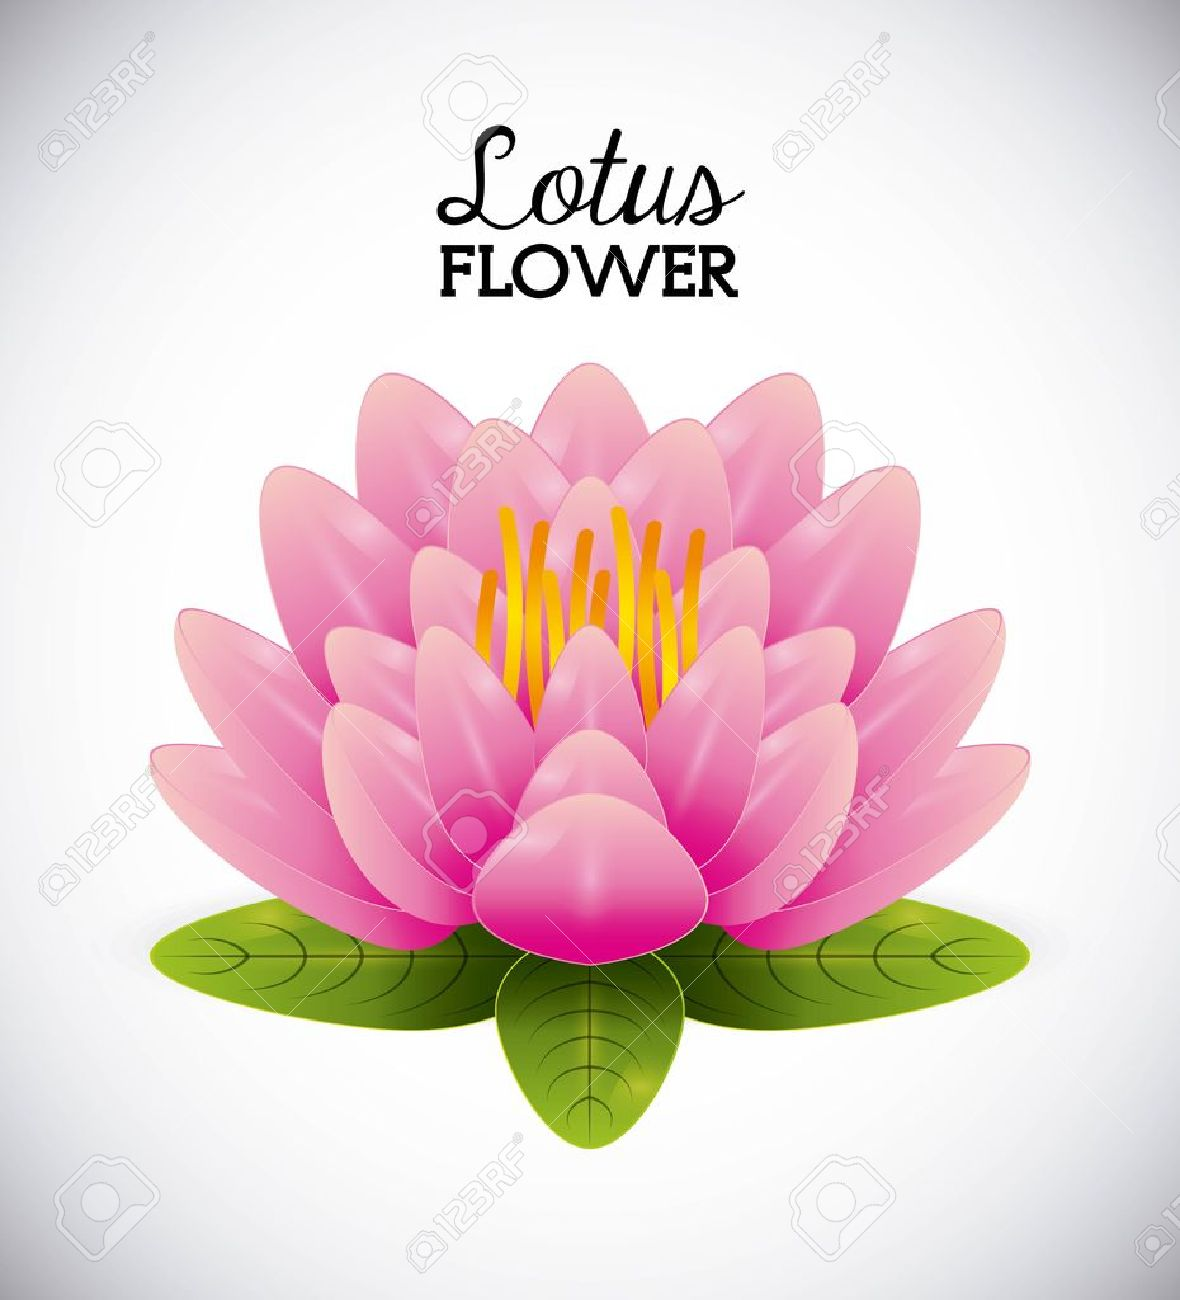 Lotus flower design vector illustration graphic royalty free lotus flower design vector illustration graphic stock vector 45097692 izmirmasajfo